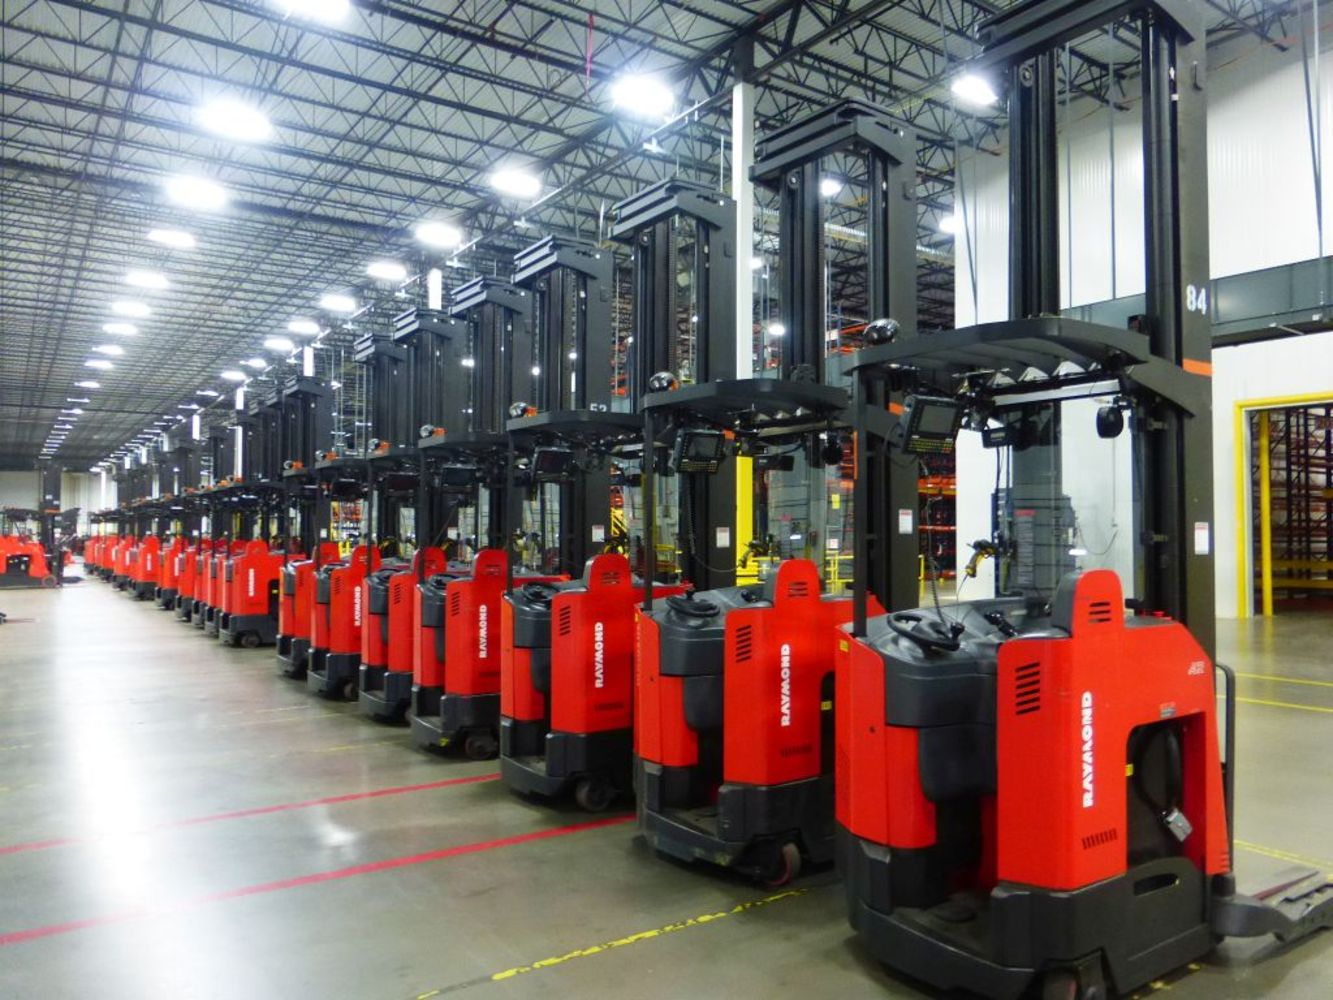 Day Two - Rolling Stock & Support Equipment from Million Square Foot Distribution Center